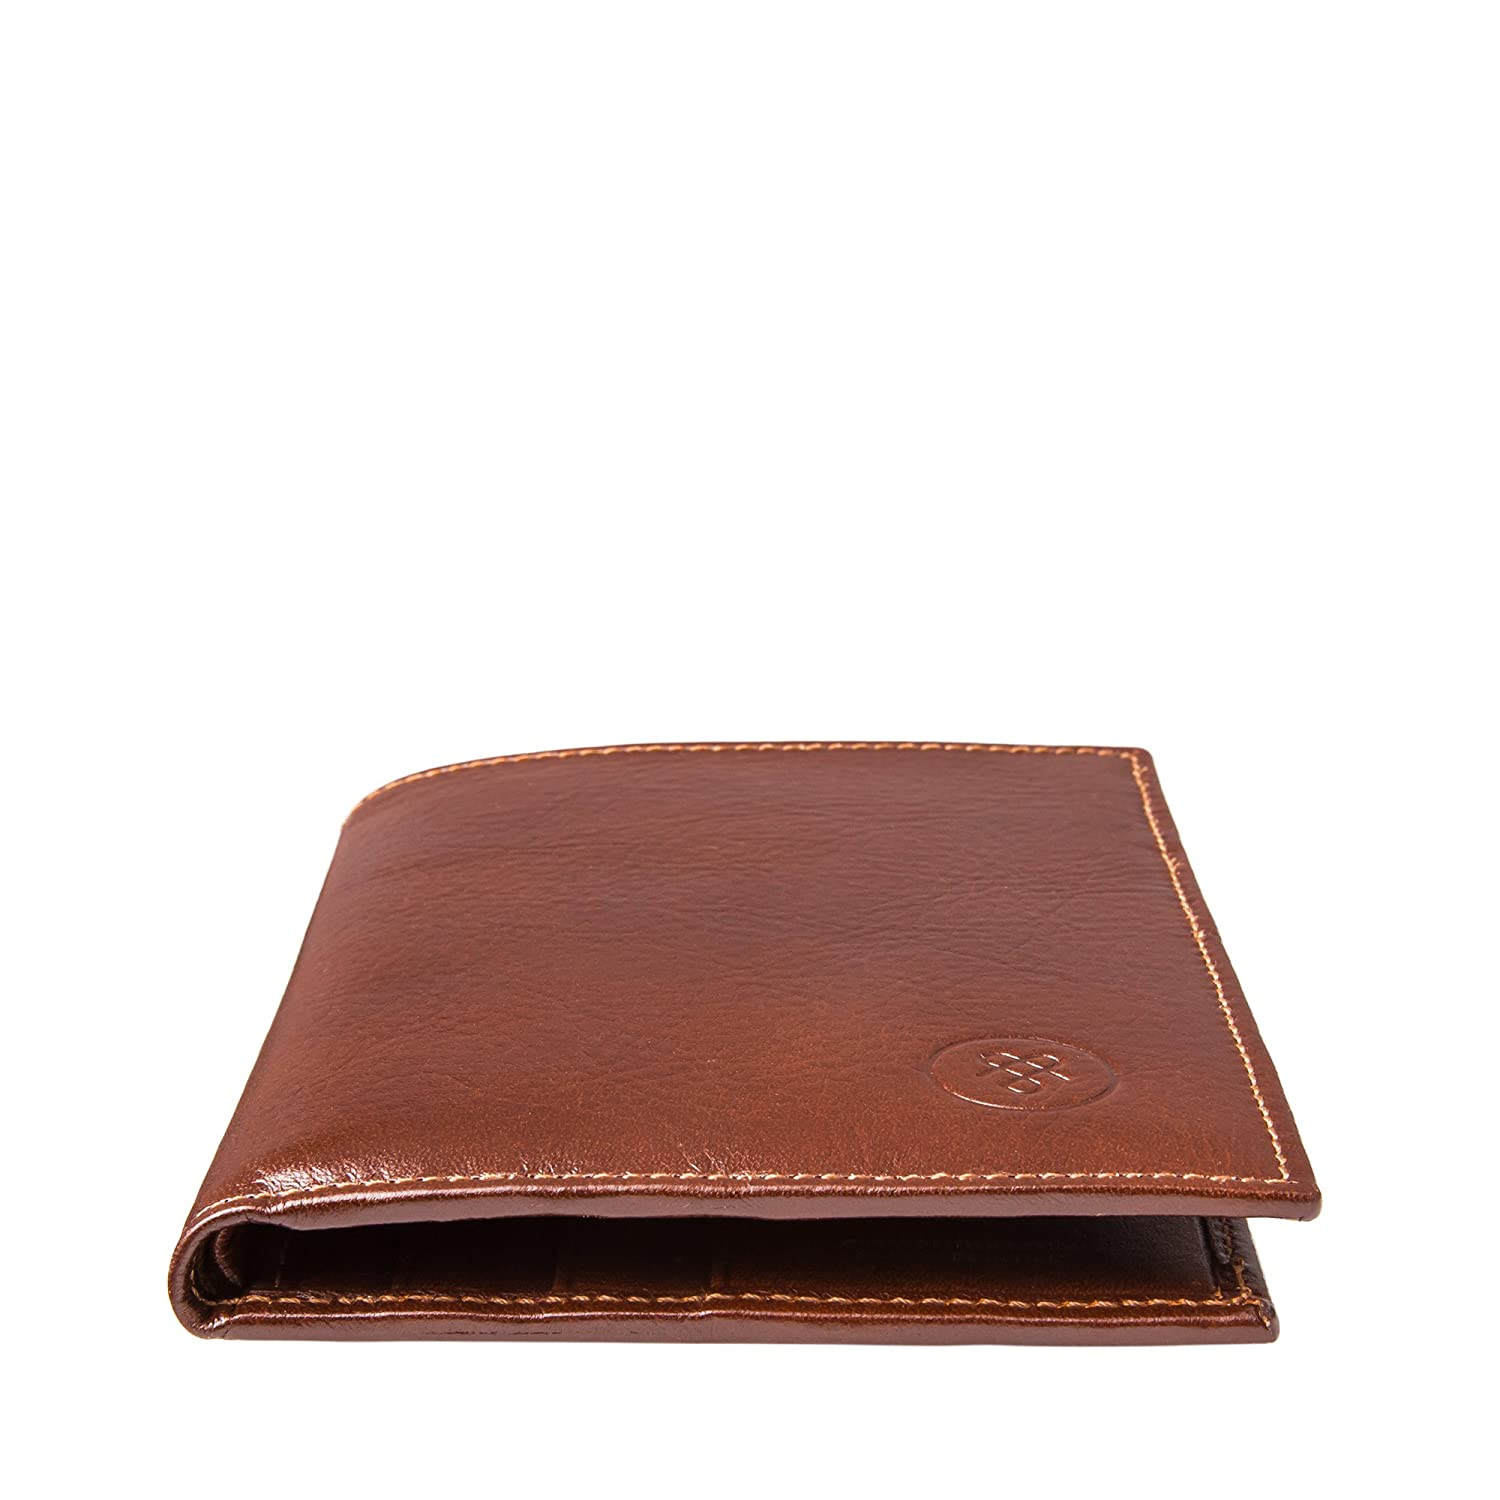 Amazon.com: Maxwell Scott Personalized Tan Leather Credit Card Wallet (The Salerno): Clothing